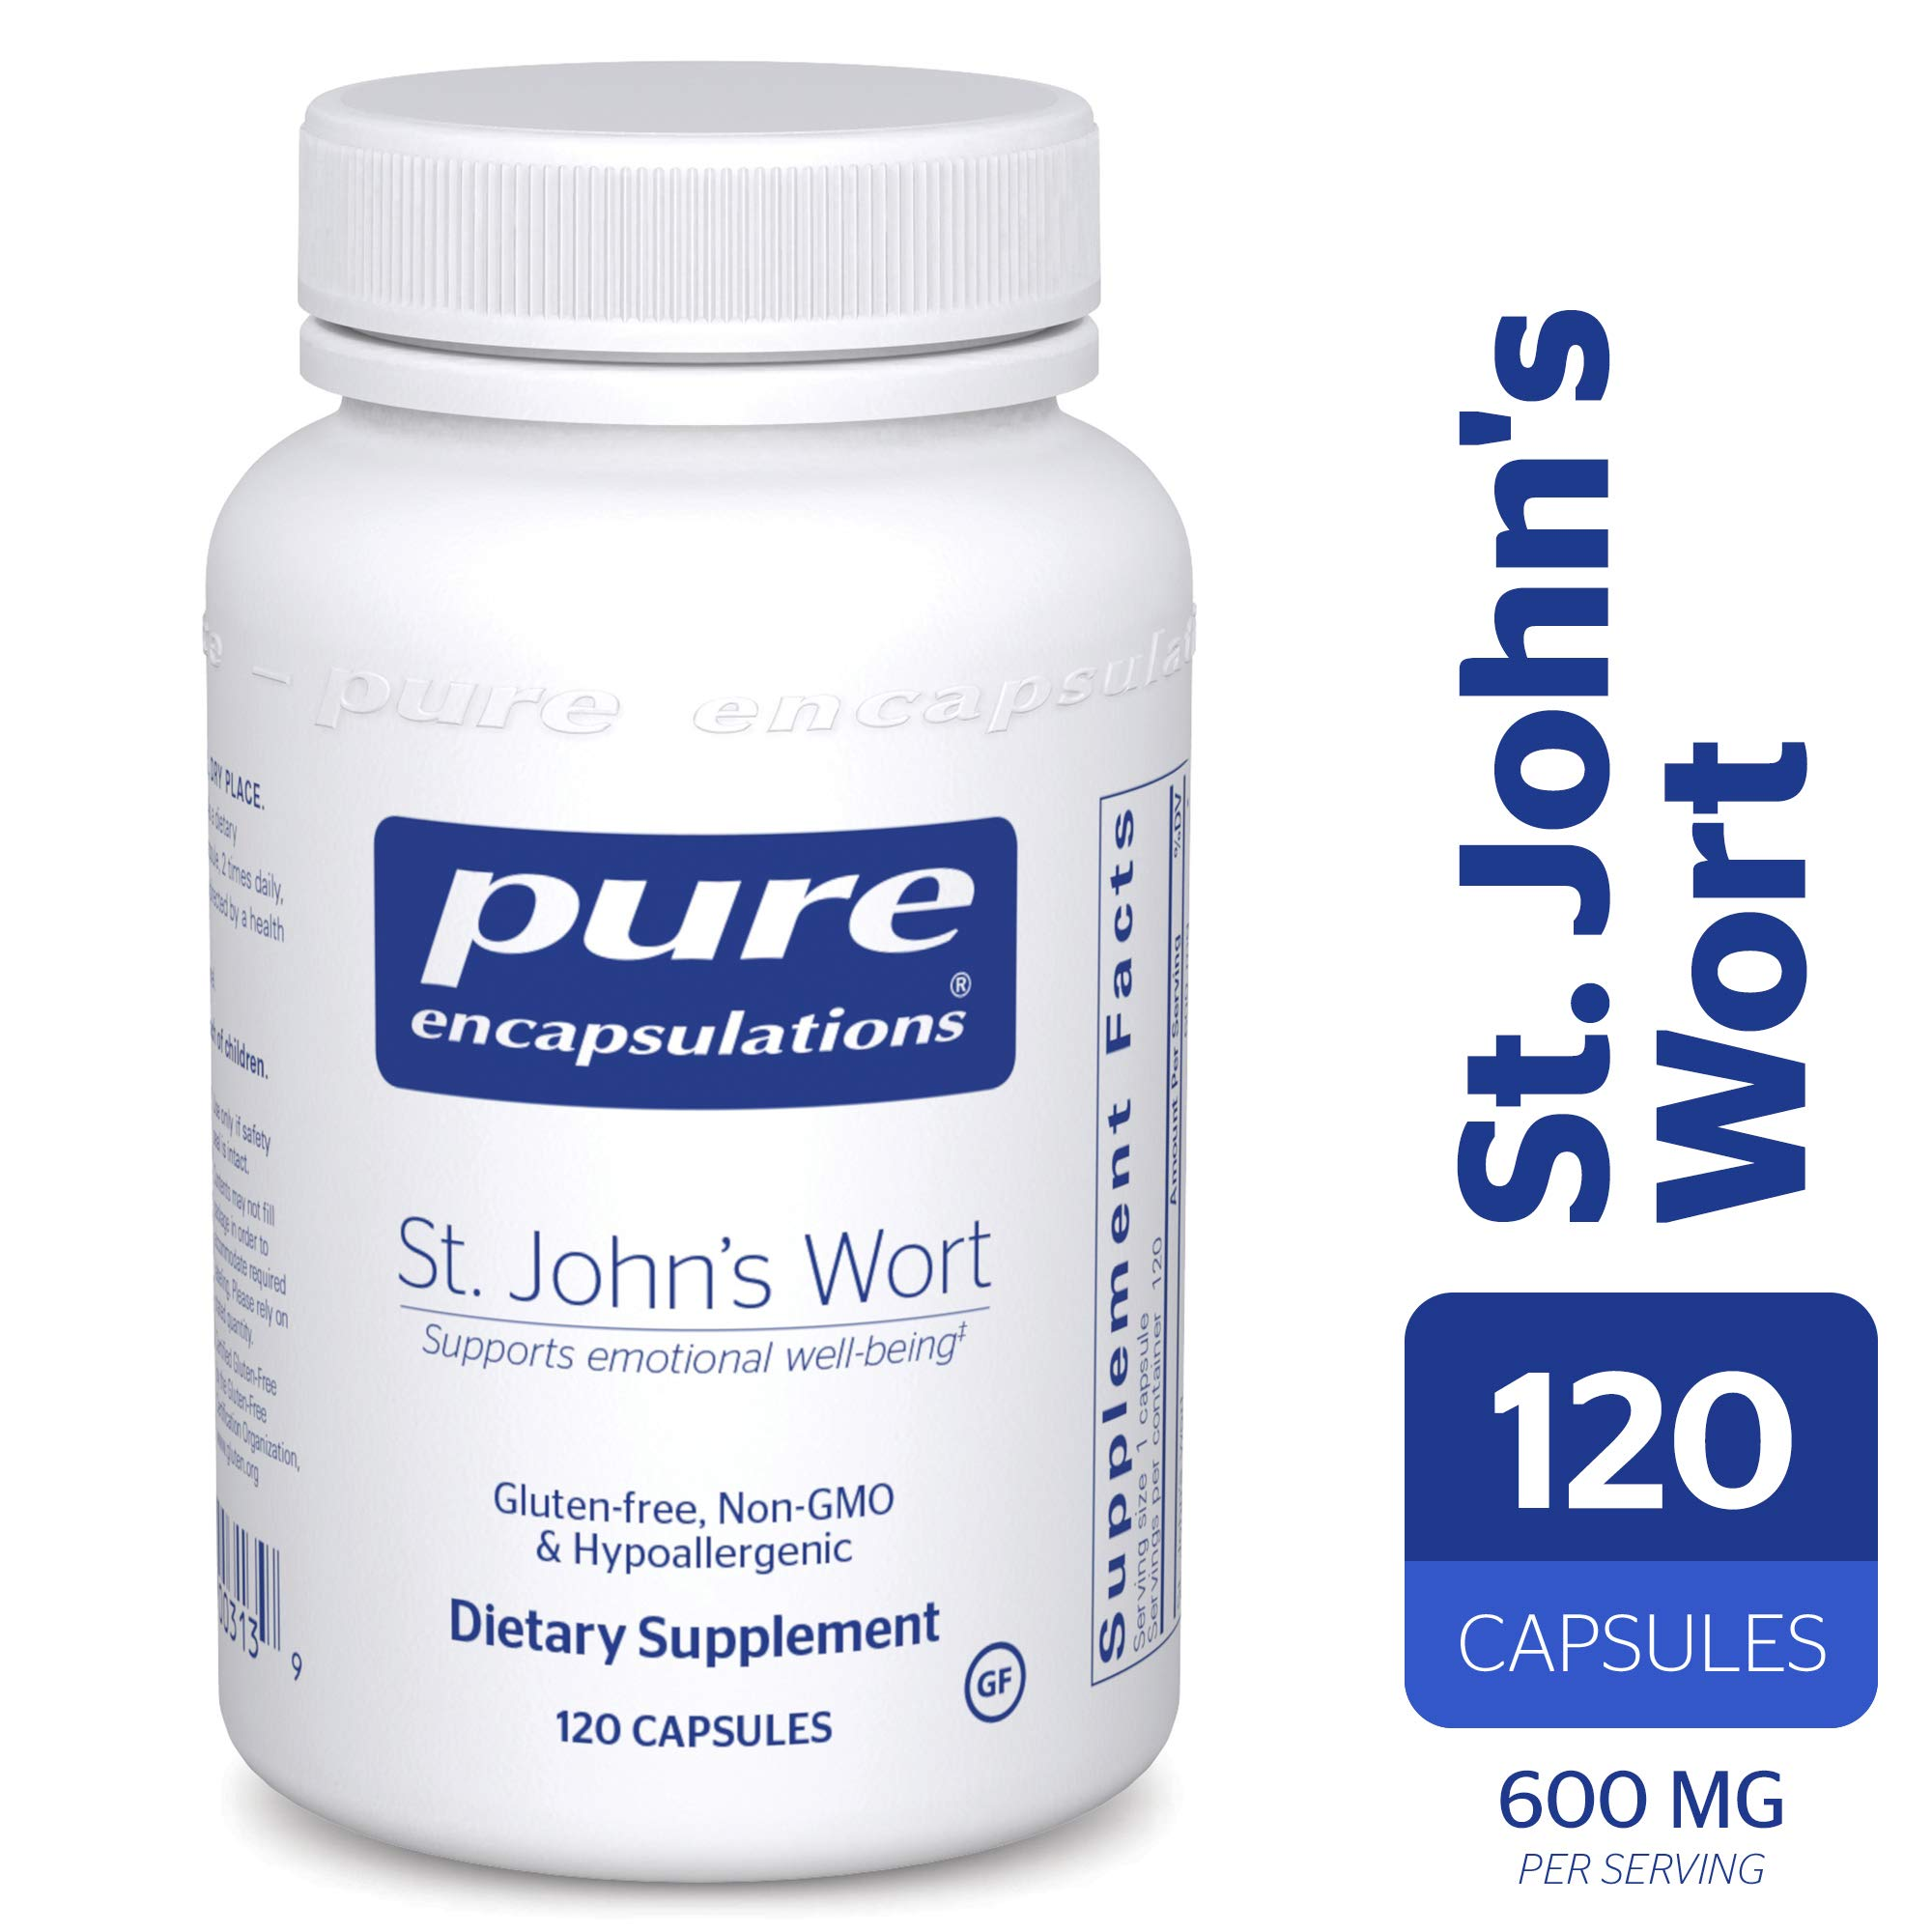 Pure Encapsulations - St. John's Wort - Hypoallergenic Supplement Promotes Emotional Well-Being* - 120 Capsules